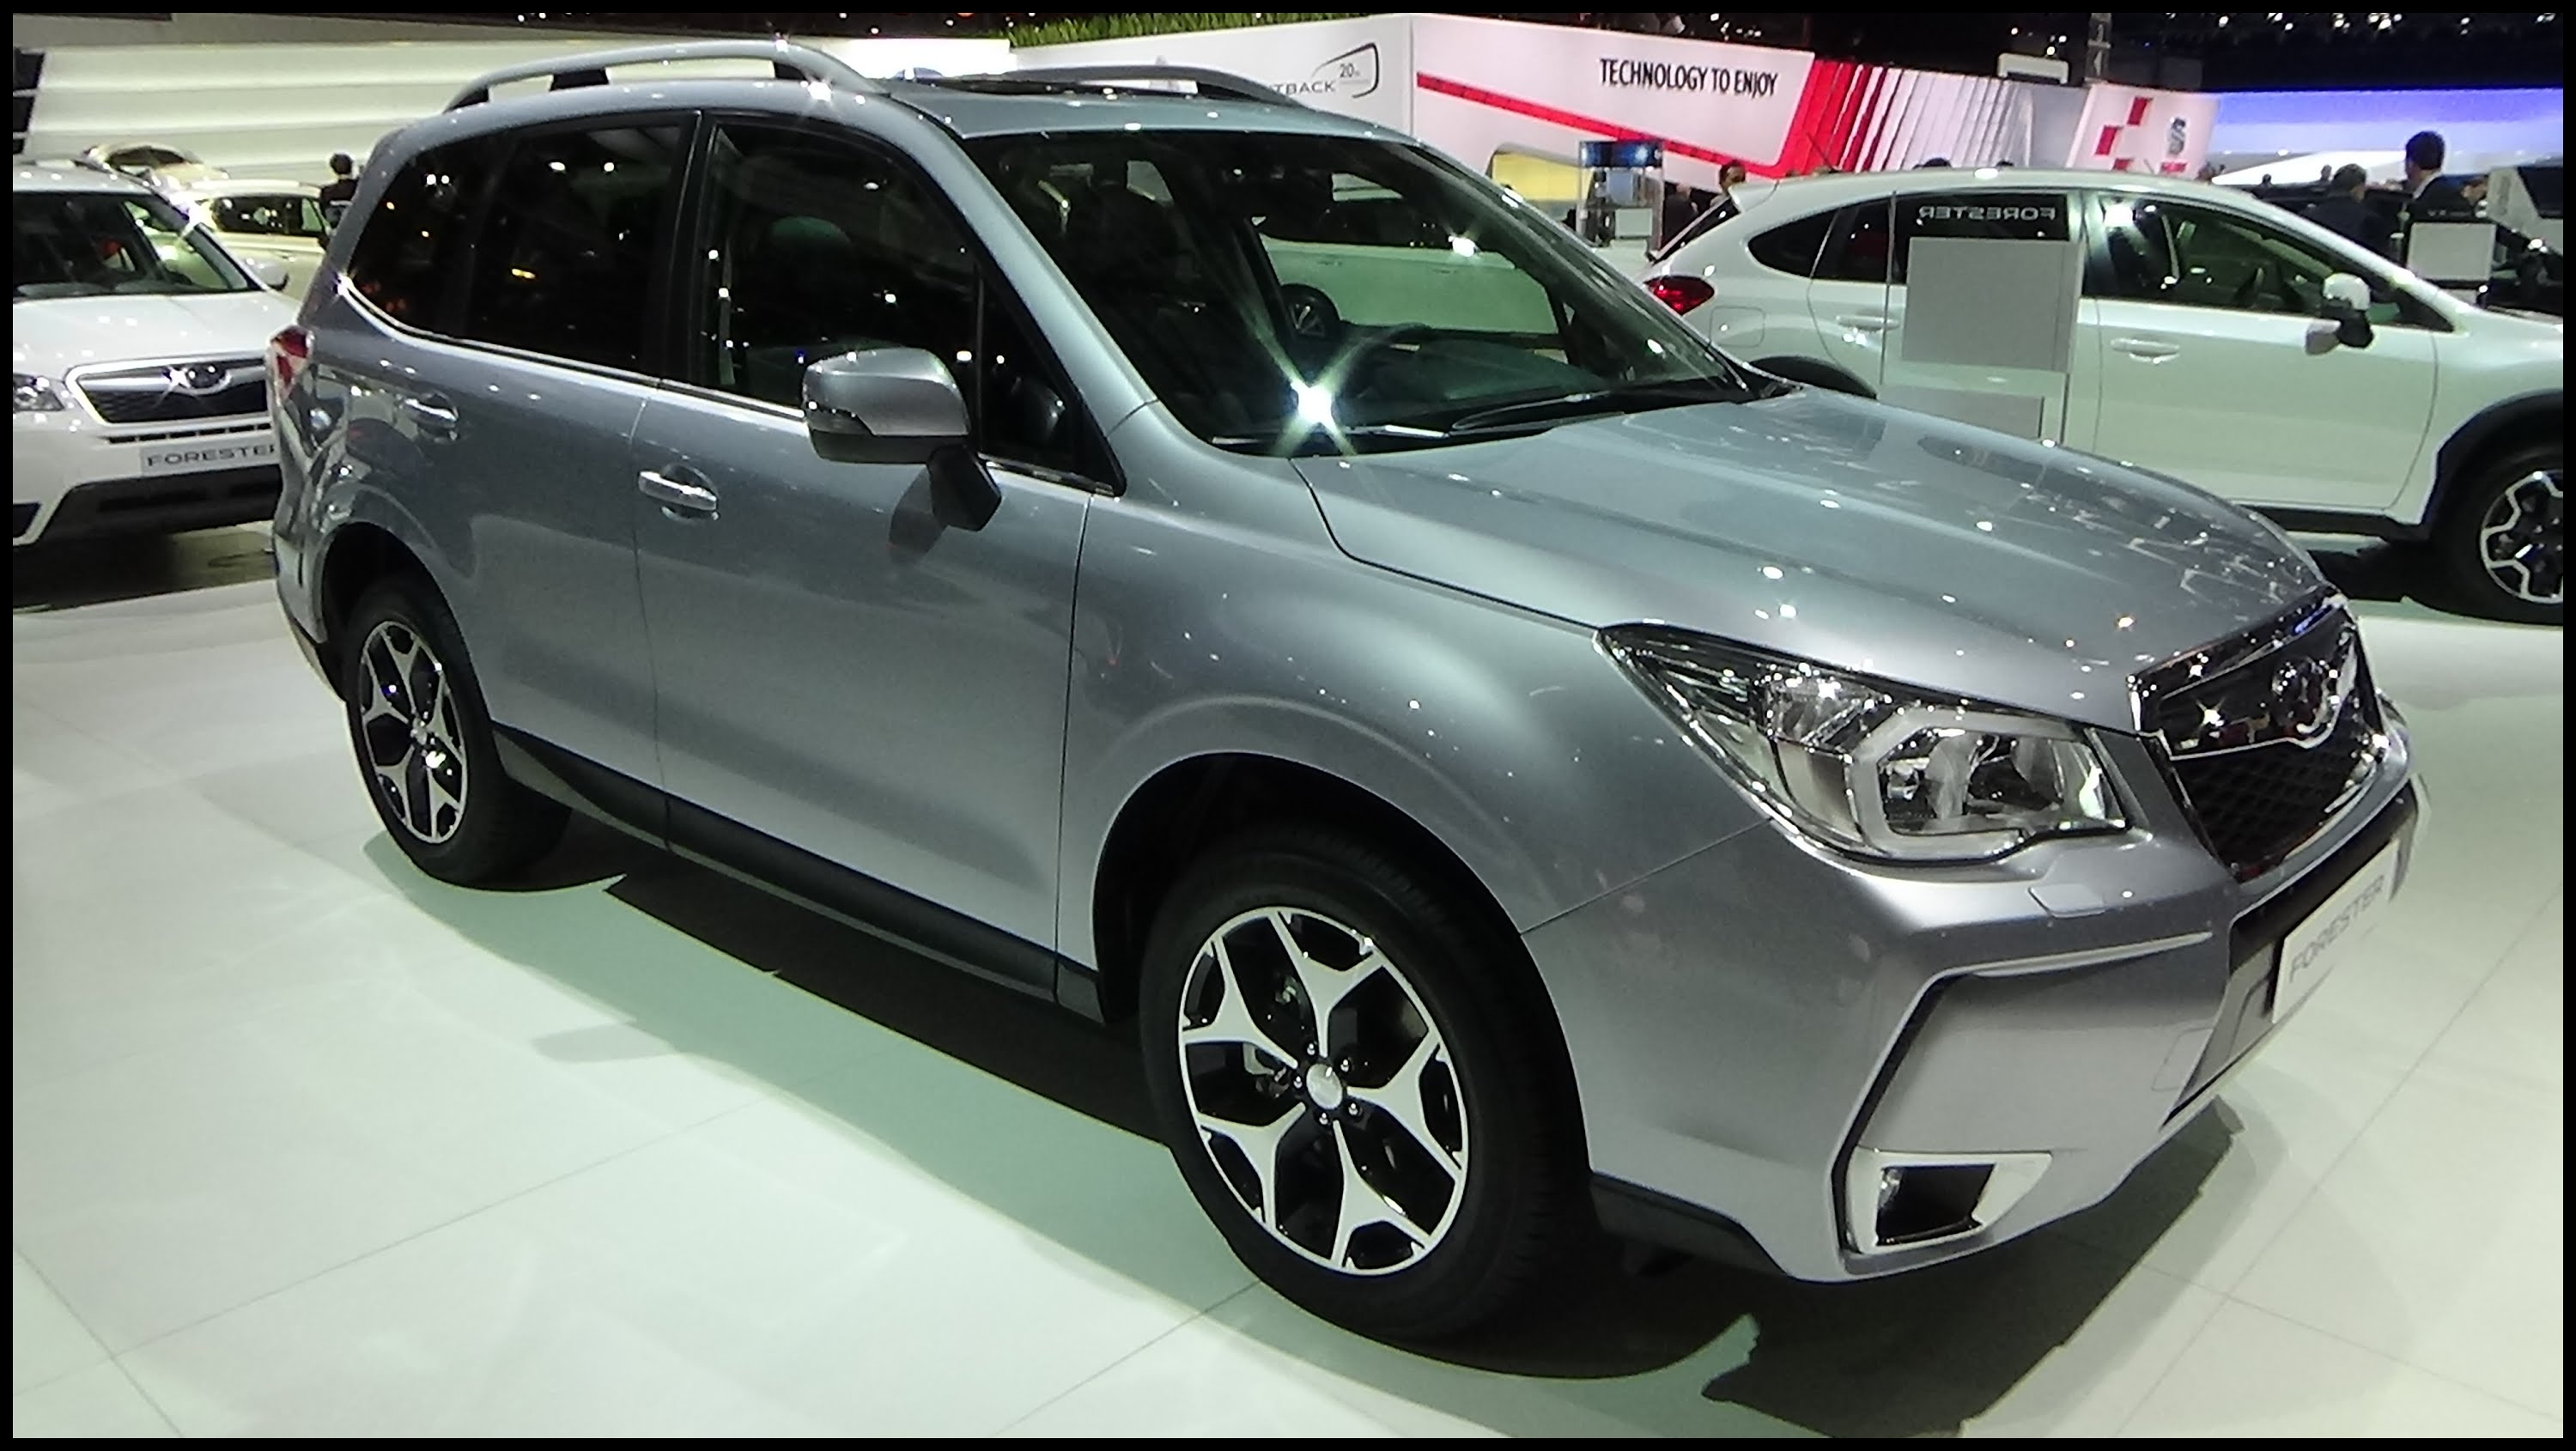 2016 Subaru forester Awd 2 0d Lineartronic Exterior and Interior Concept